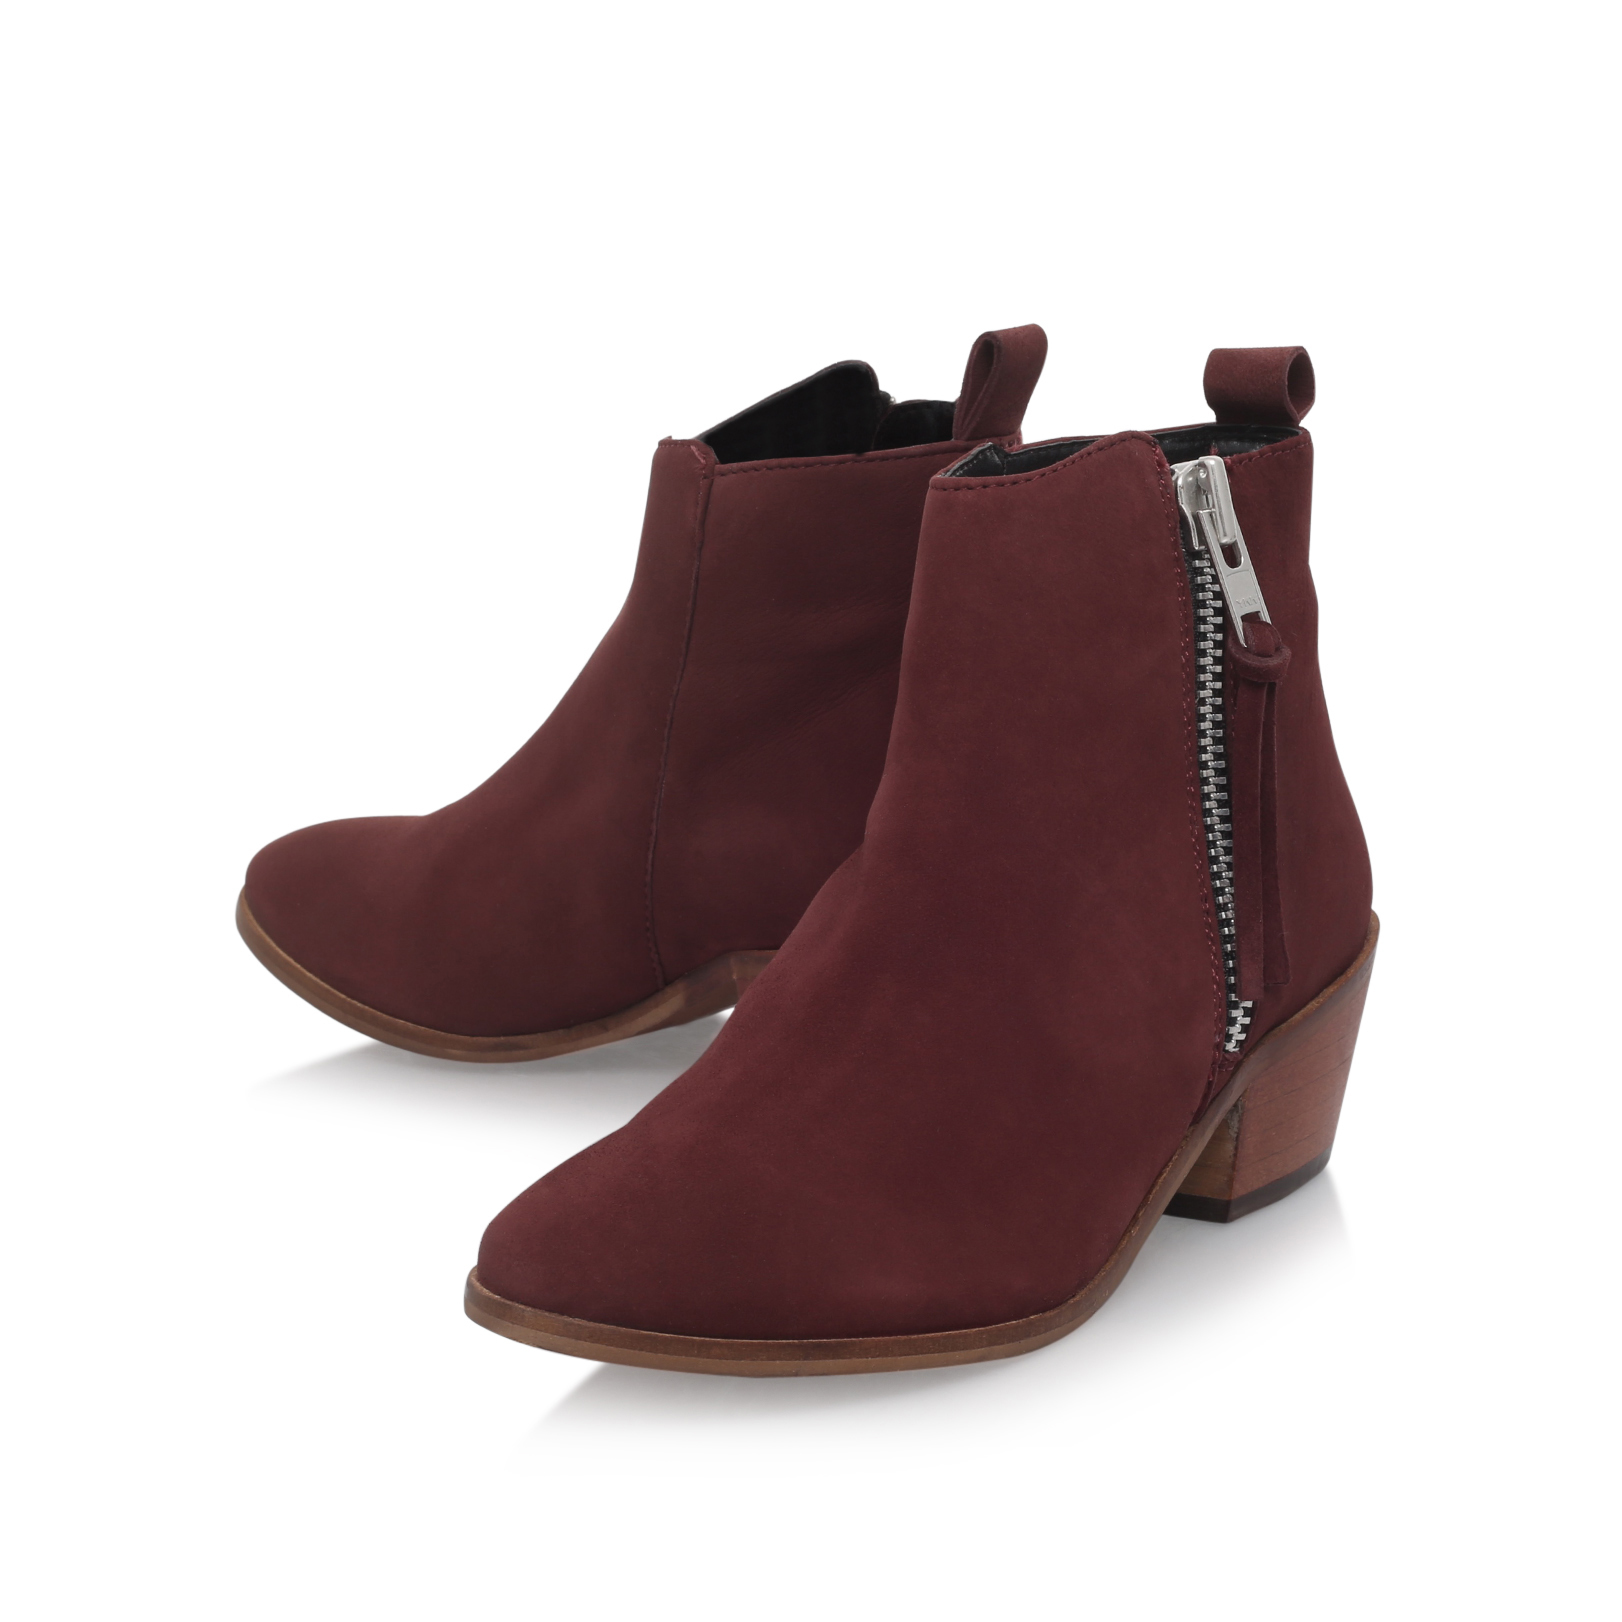 b0a448be177 SHOOTER Carvela Shooter Wine Leather Flat Ankle Boots by CARVELA